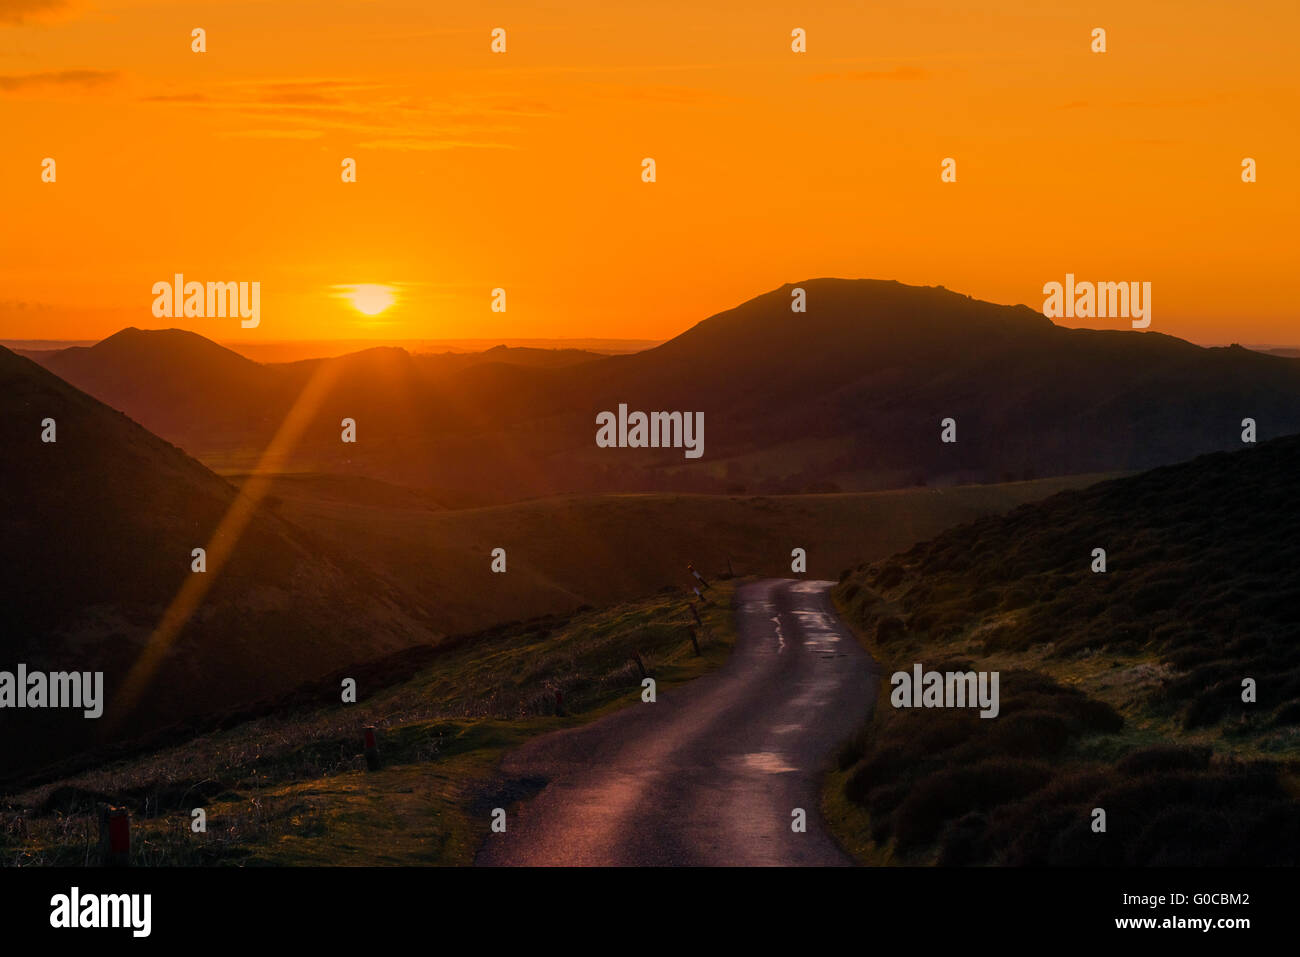 Sunrise over the Shropshire Hills AONB. Photo from Bur Way looking across Carding Mill Valley & Long Mynd above - Stock Image